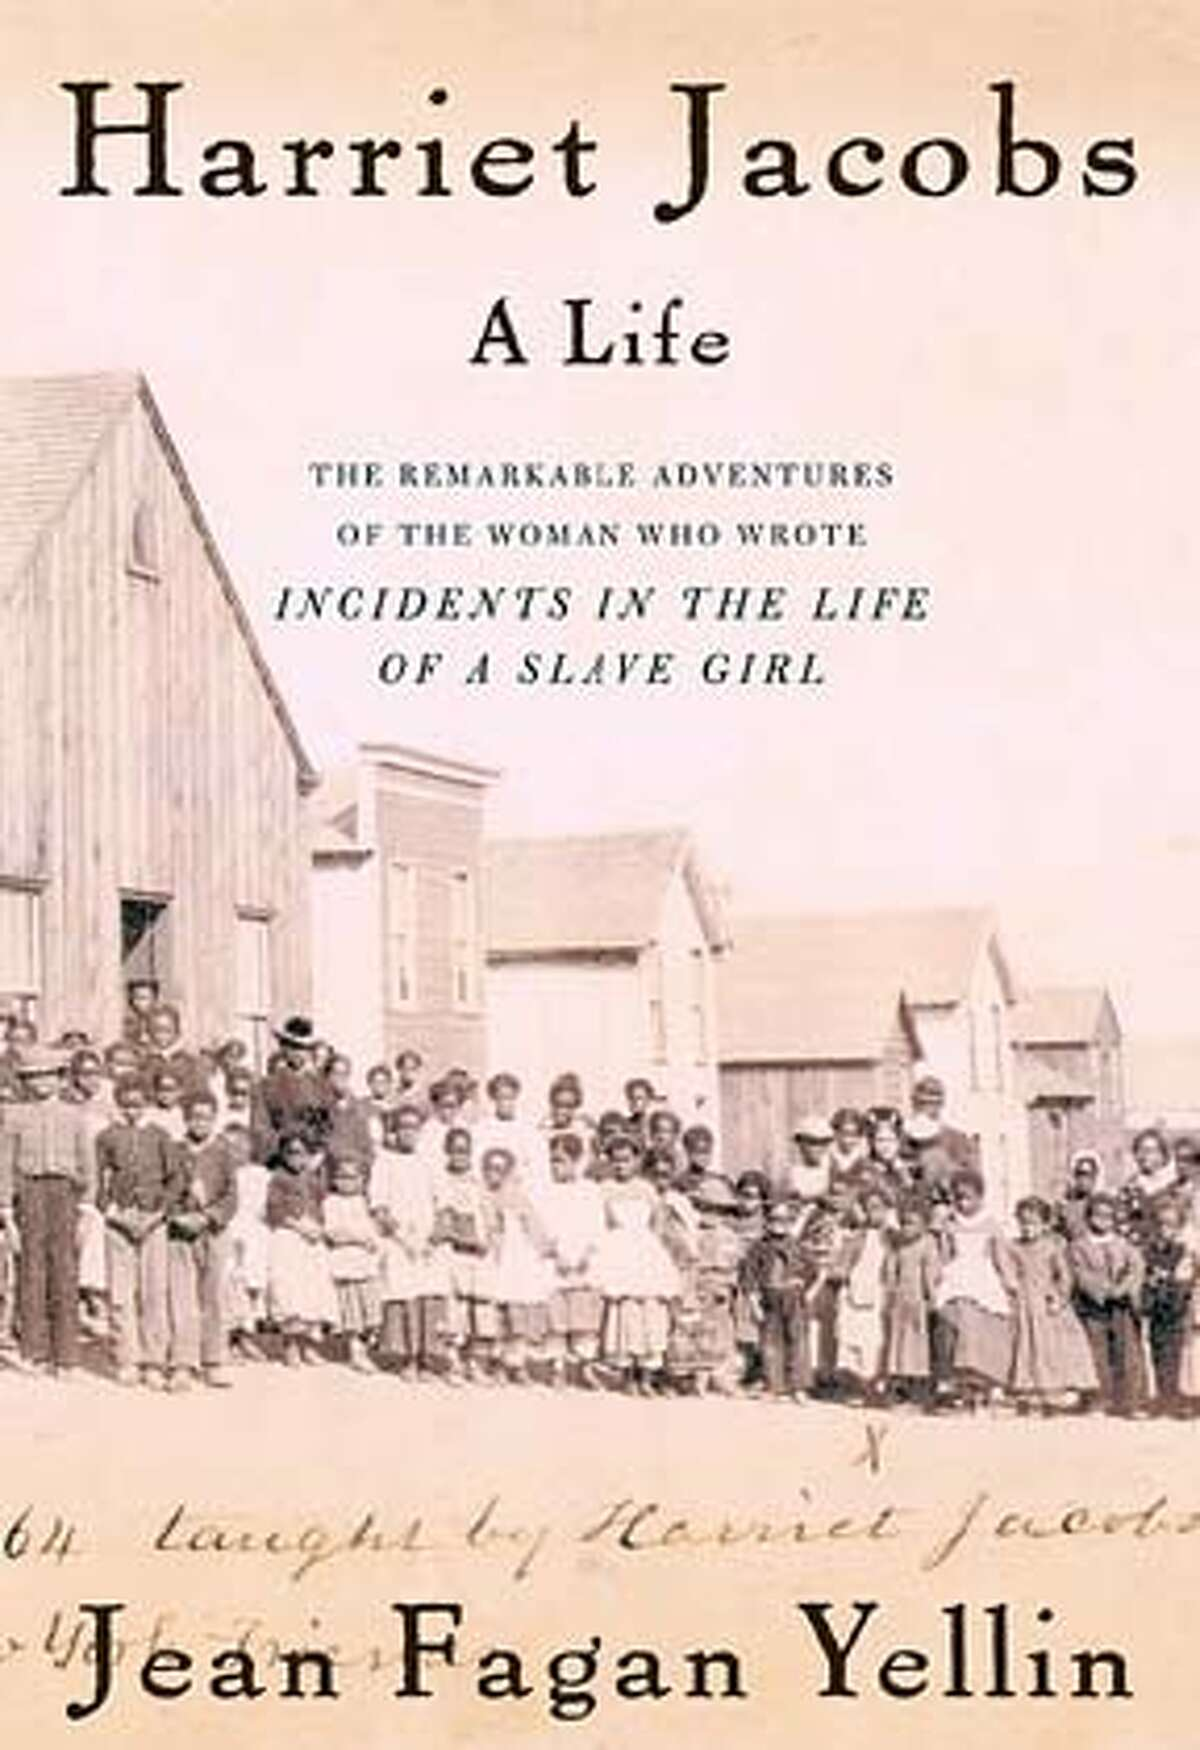 Book cover of Harriet Jacobs by Jean Fagan Yellin.